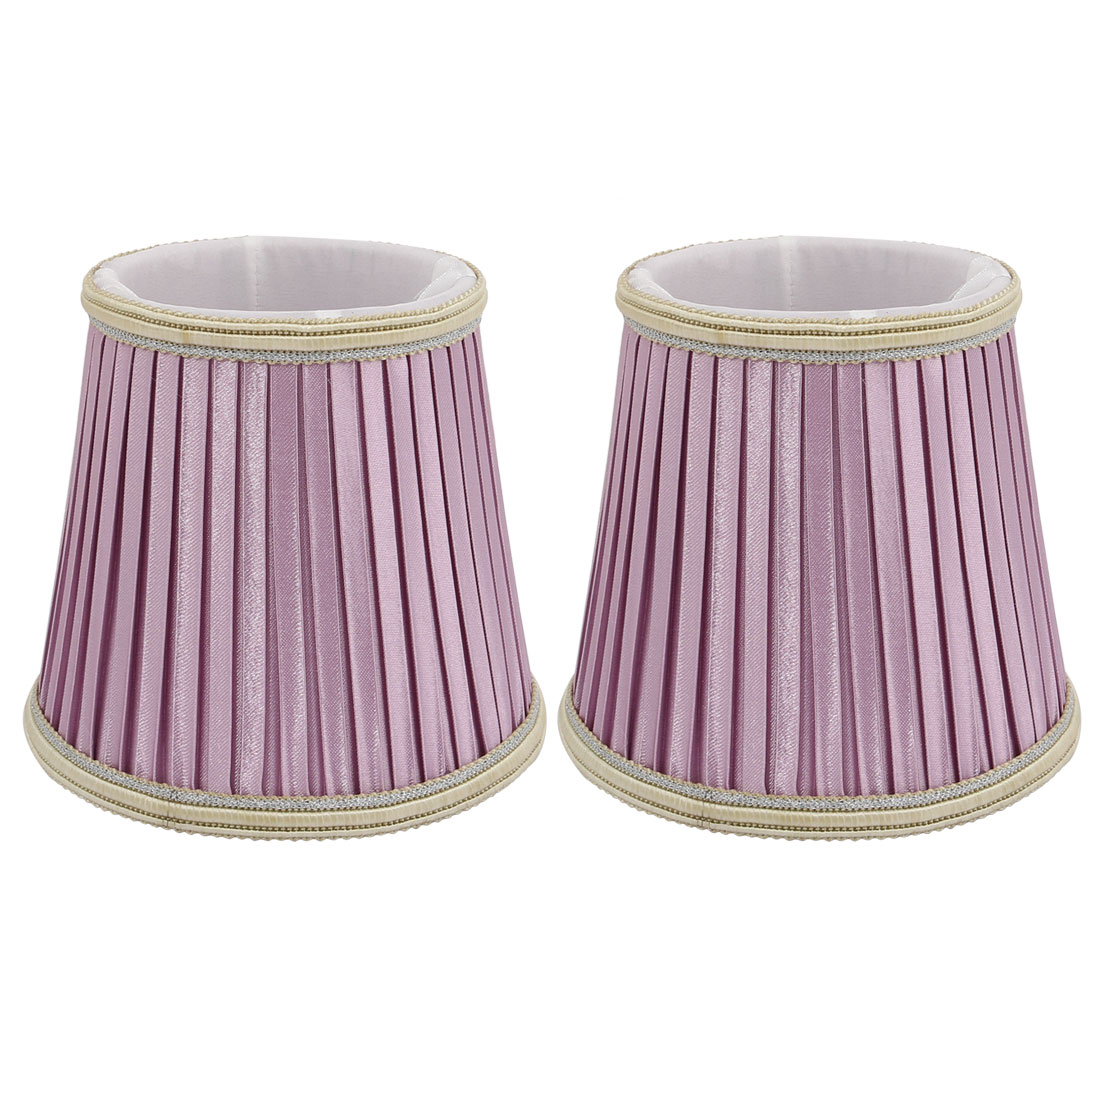 2pcs Light Shade Wall Shade Chandelier Clip-On Lampshade Light Purple by